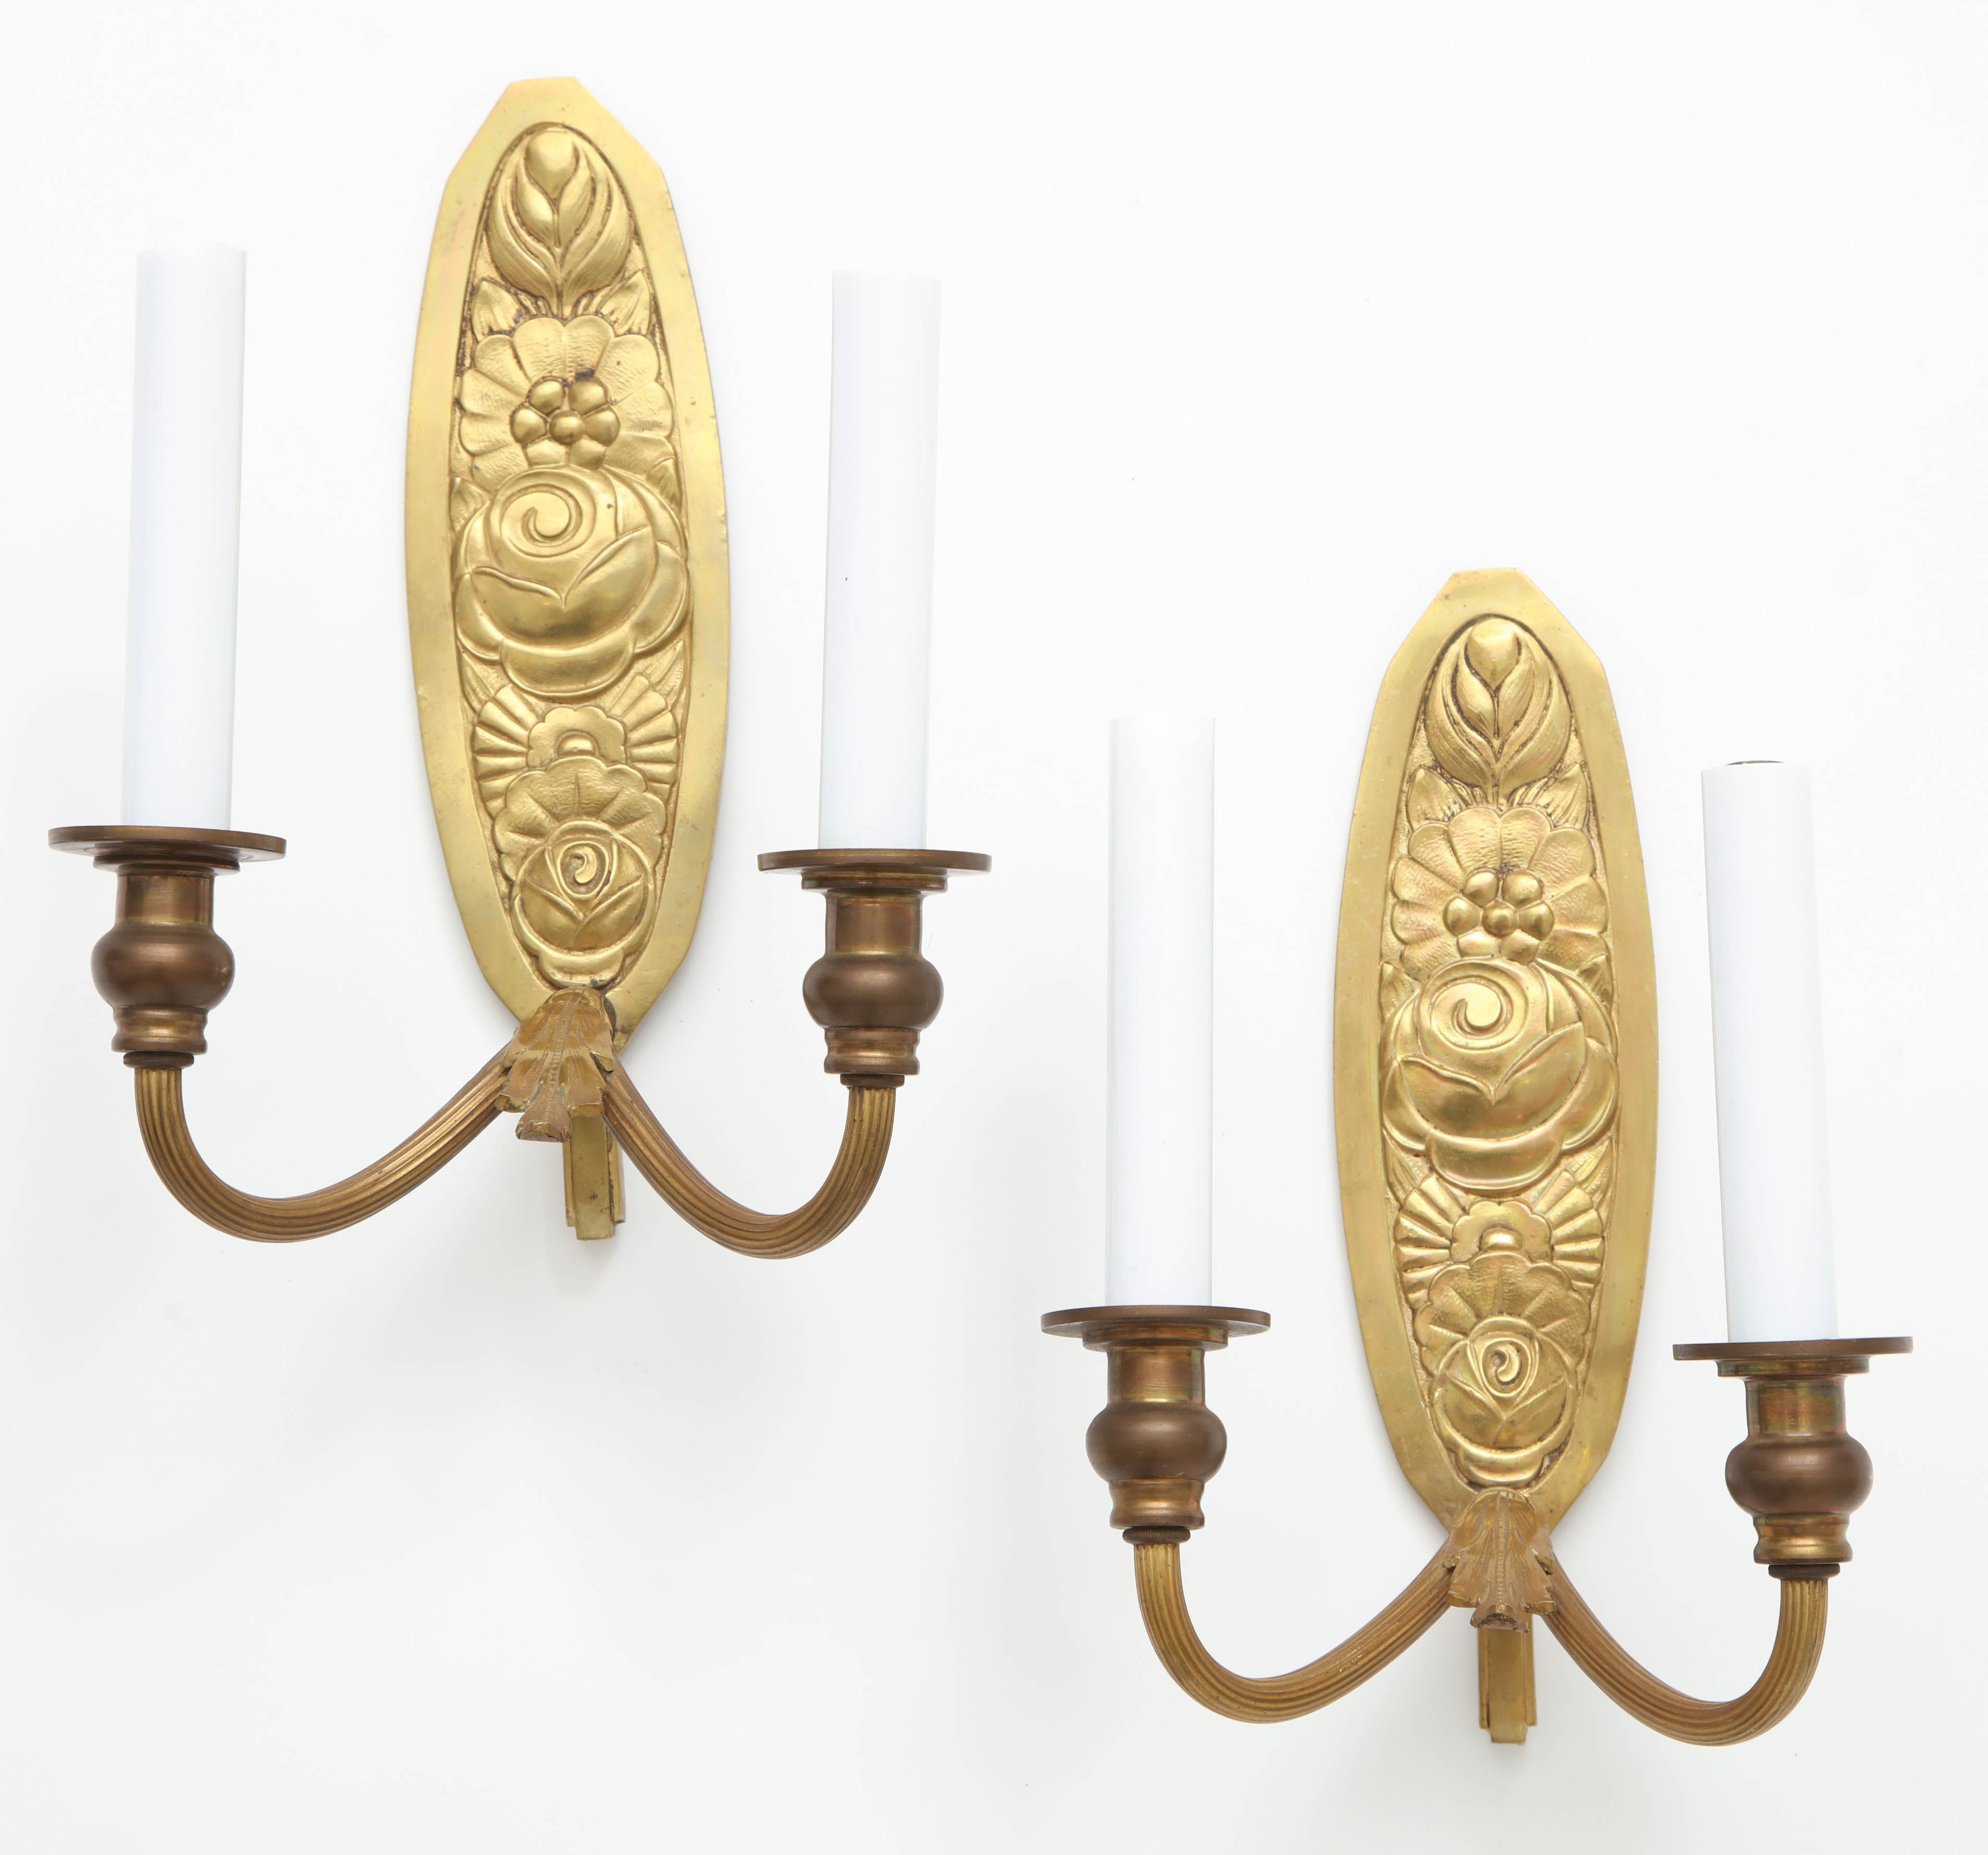 Pair Of Vintage French Bronze Wall Candle Sconces For Sale At 1stdibs